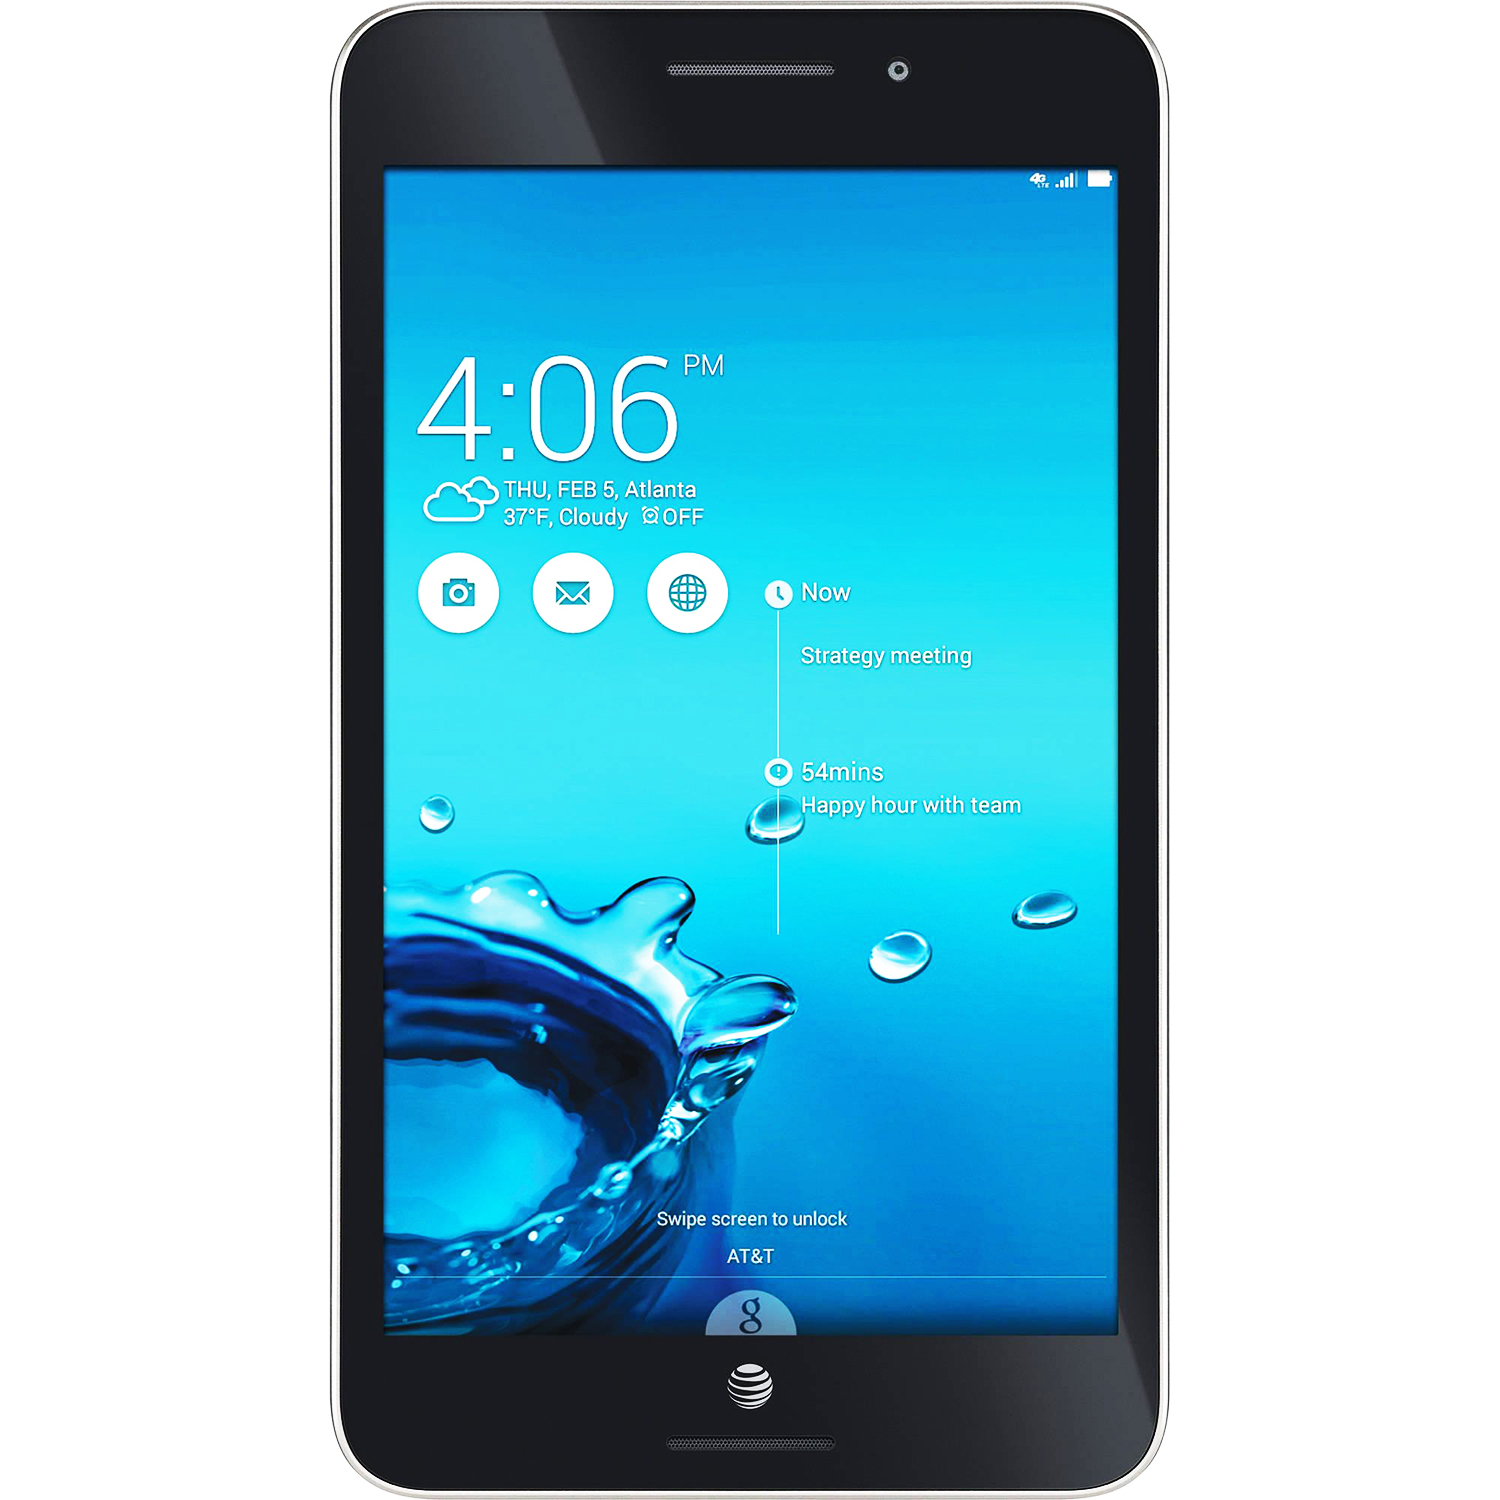 "Refurbished ASUS MeMO Pad 7 7"" IPS LTE QuadCore 1.33GHz 1GB 16GB WiFi Android Tablet-AT&T"